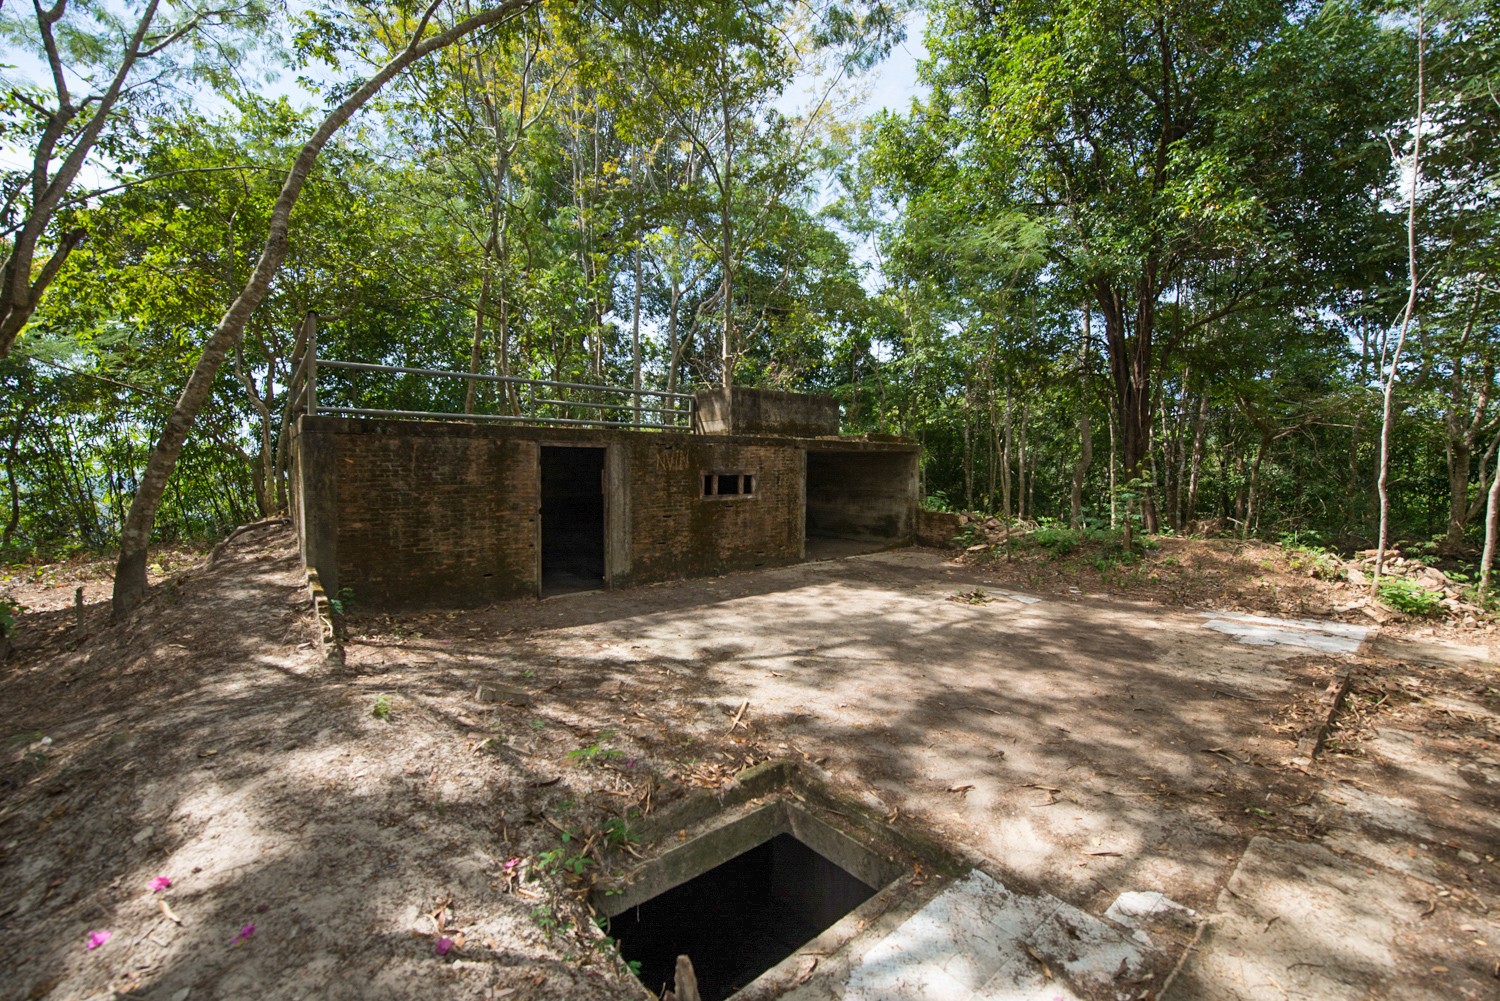 Cambodia photo tours Pol Pot house